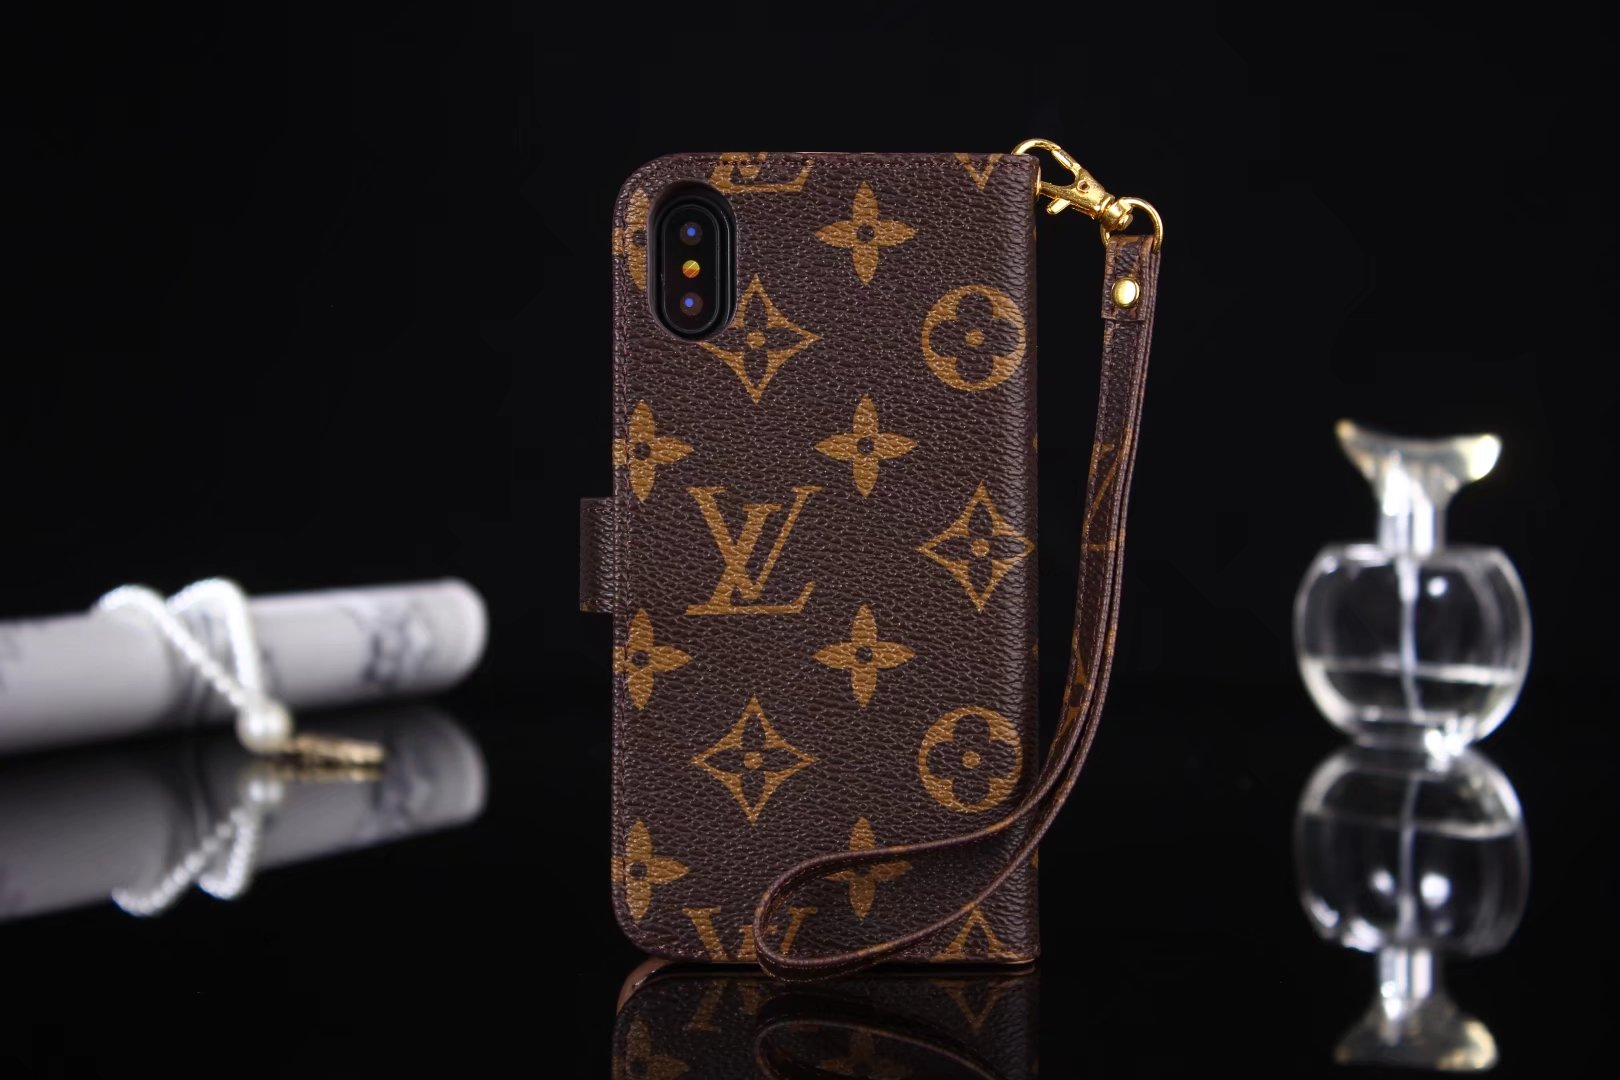 iphone cases X iphone X cases with designs Louis Vuitton iPhone X case iphones covers and cases best case for 8 iphone covers uk top iphone cases iphone 6 case women best case for iphone 8